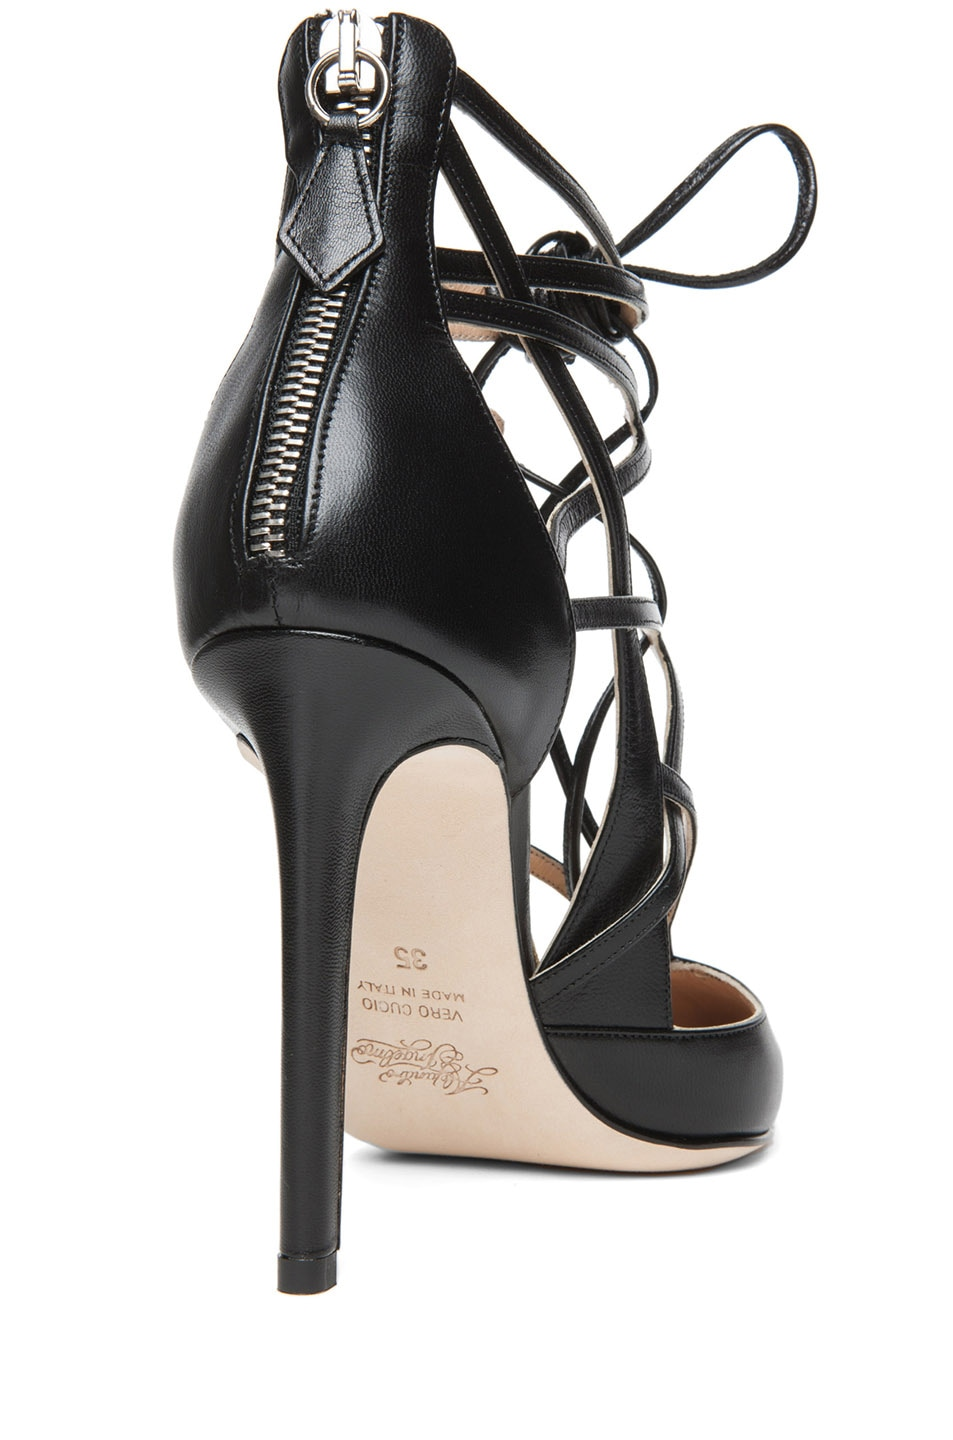 Image 3 of Alejandro Ingelmo Boomerang Calfskin Leather Lace Up Pump in Black